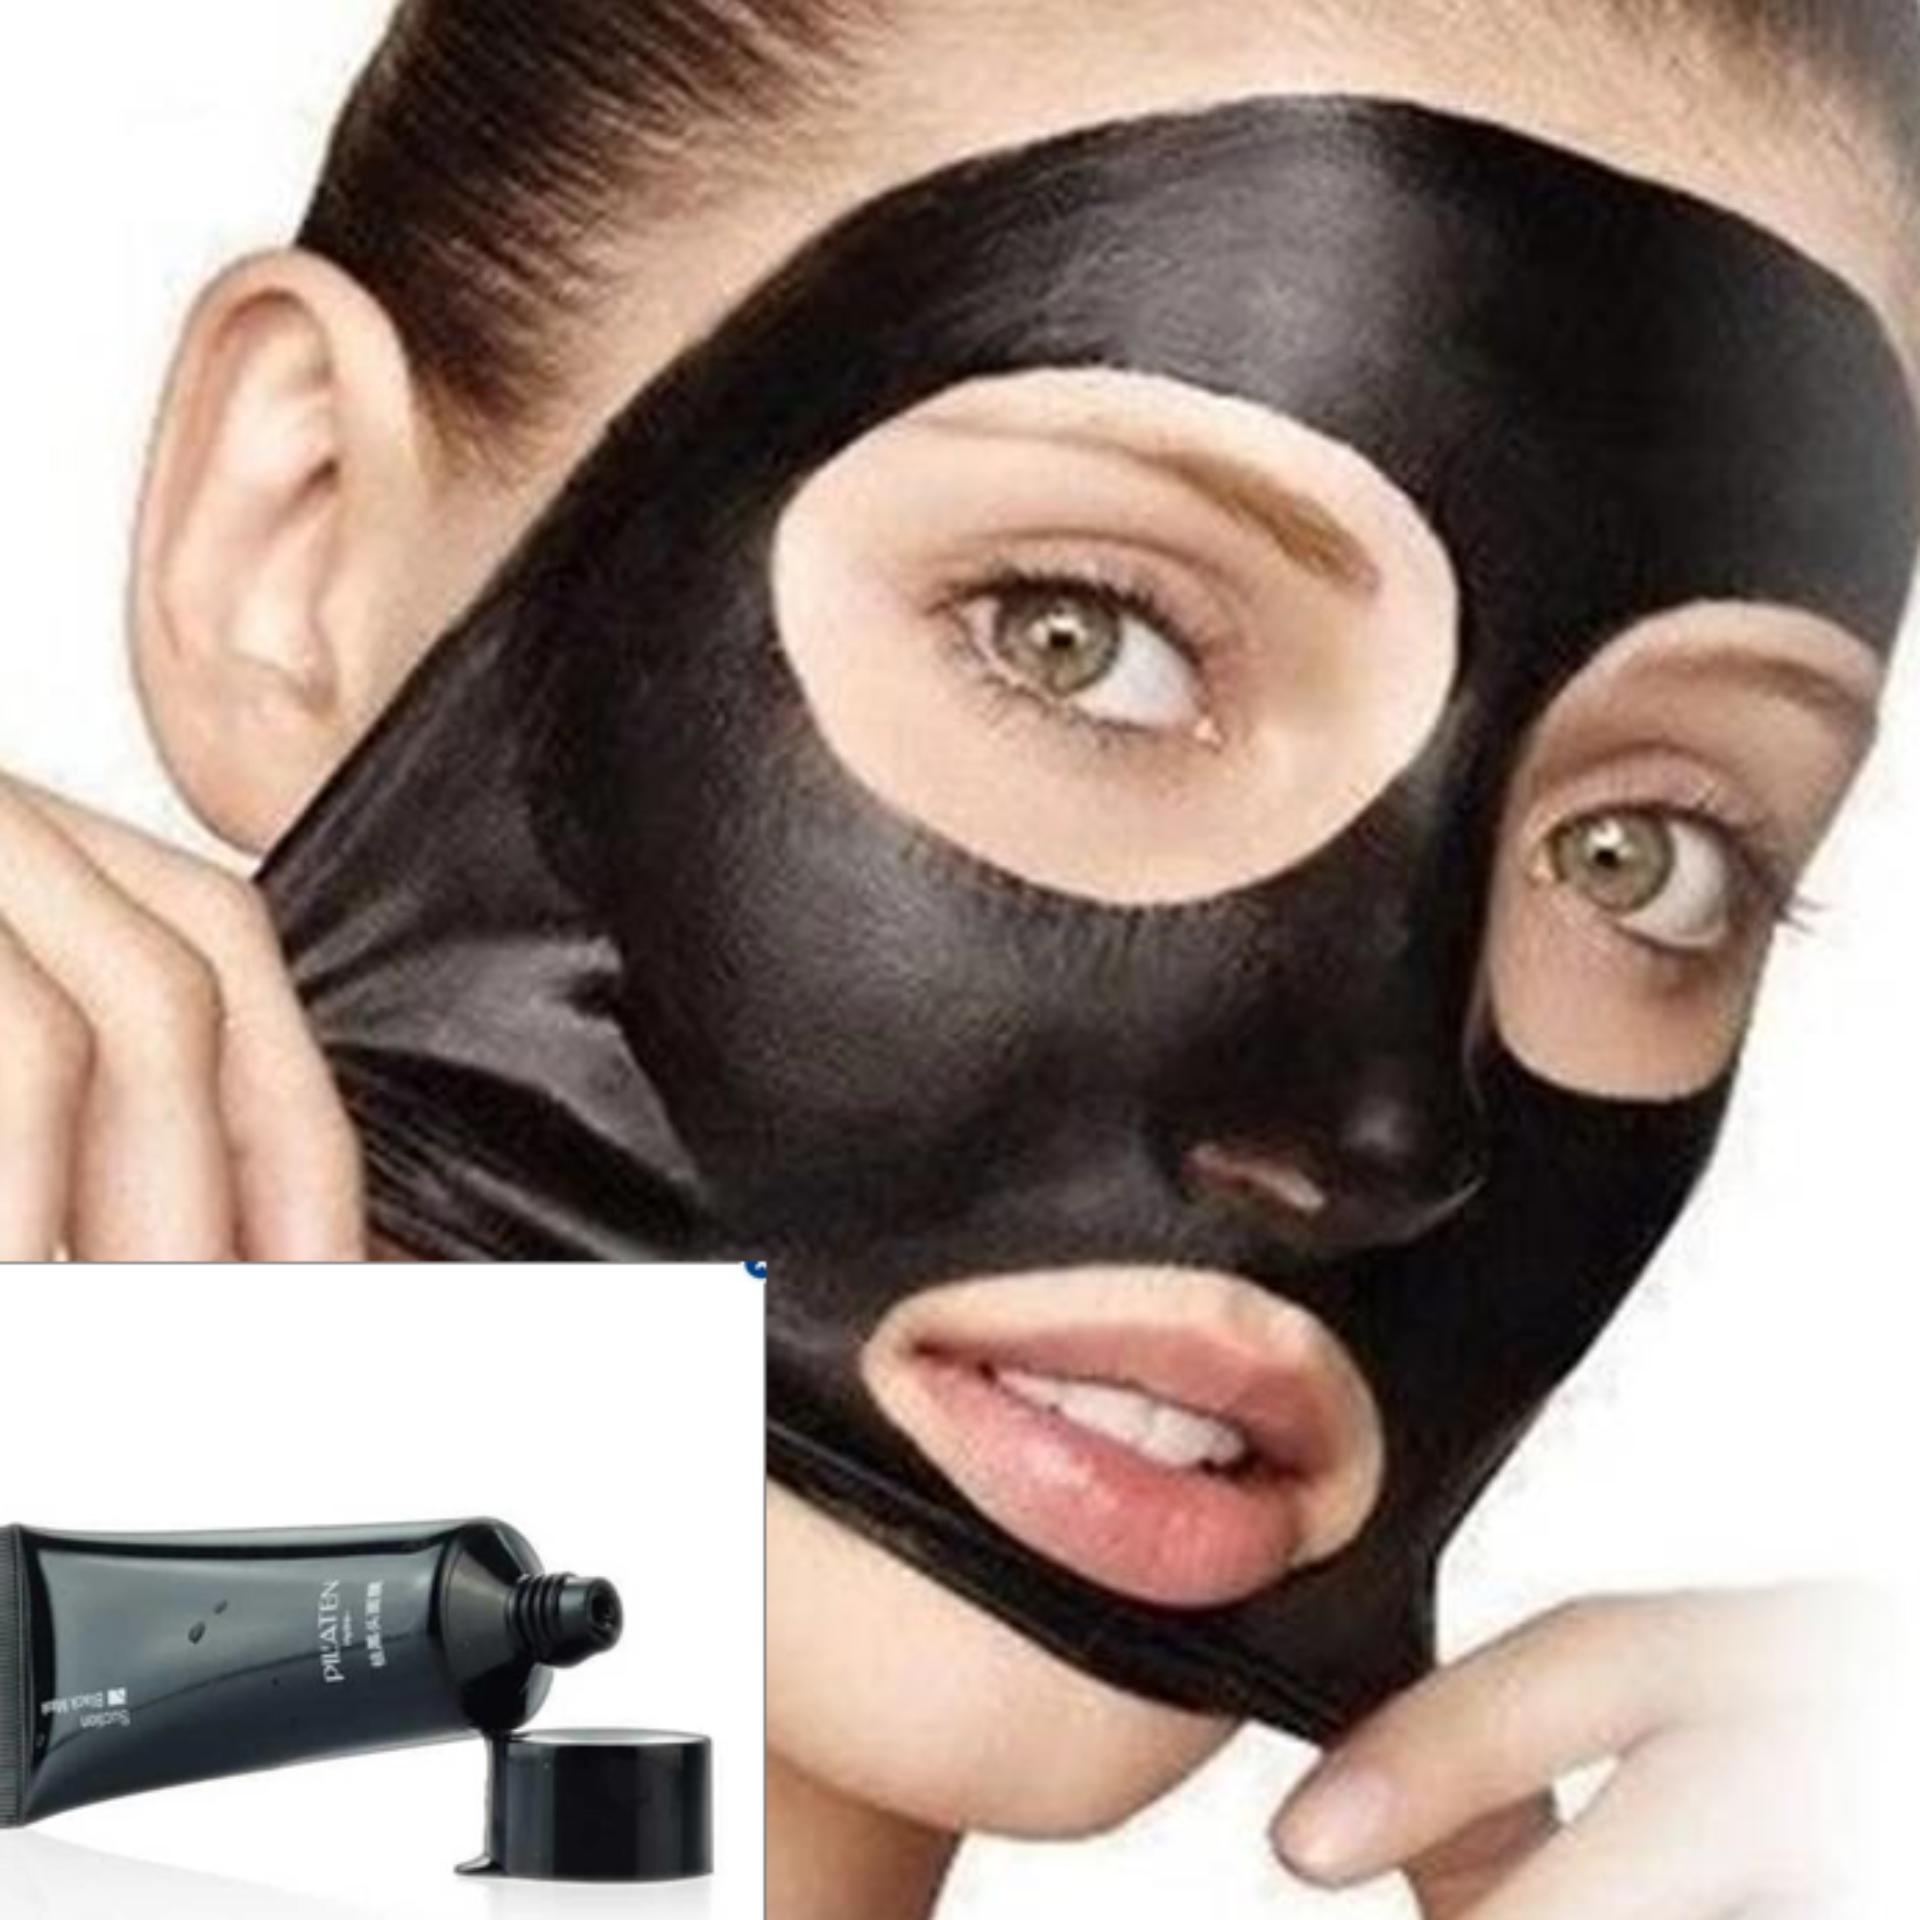 XILIZILM blackhead remover 60G,Tearing style Deep Cleansing purifying peel off the Black head,